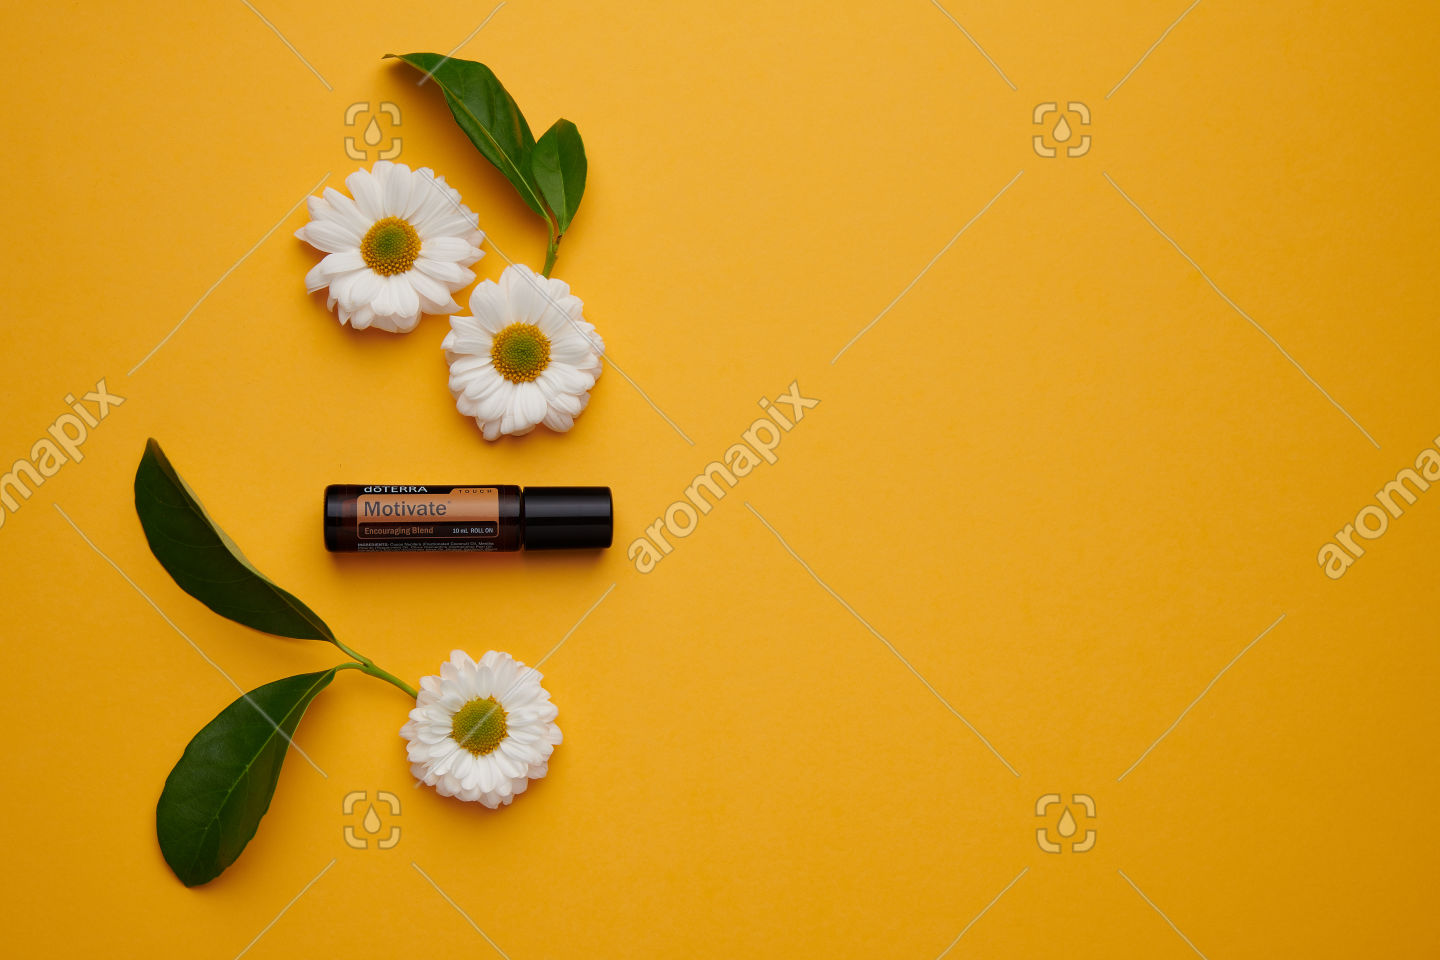 doTERRA Motivate Touch with flowers and leaves on orange